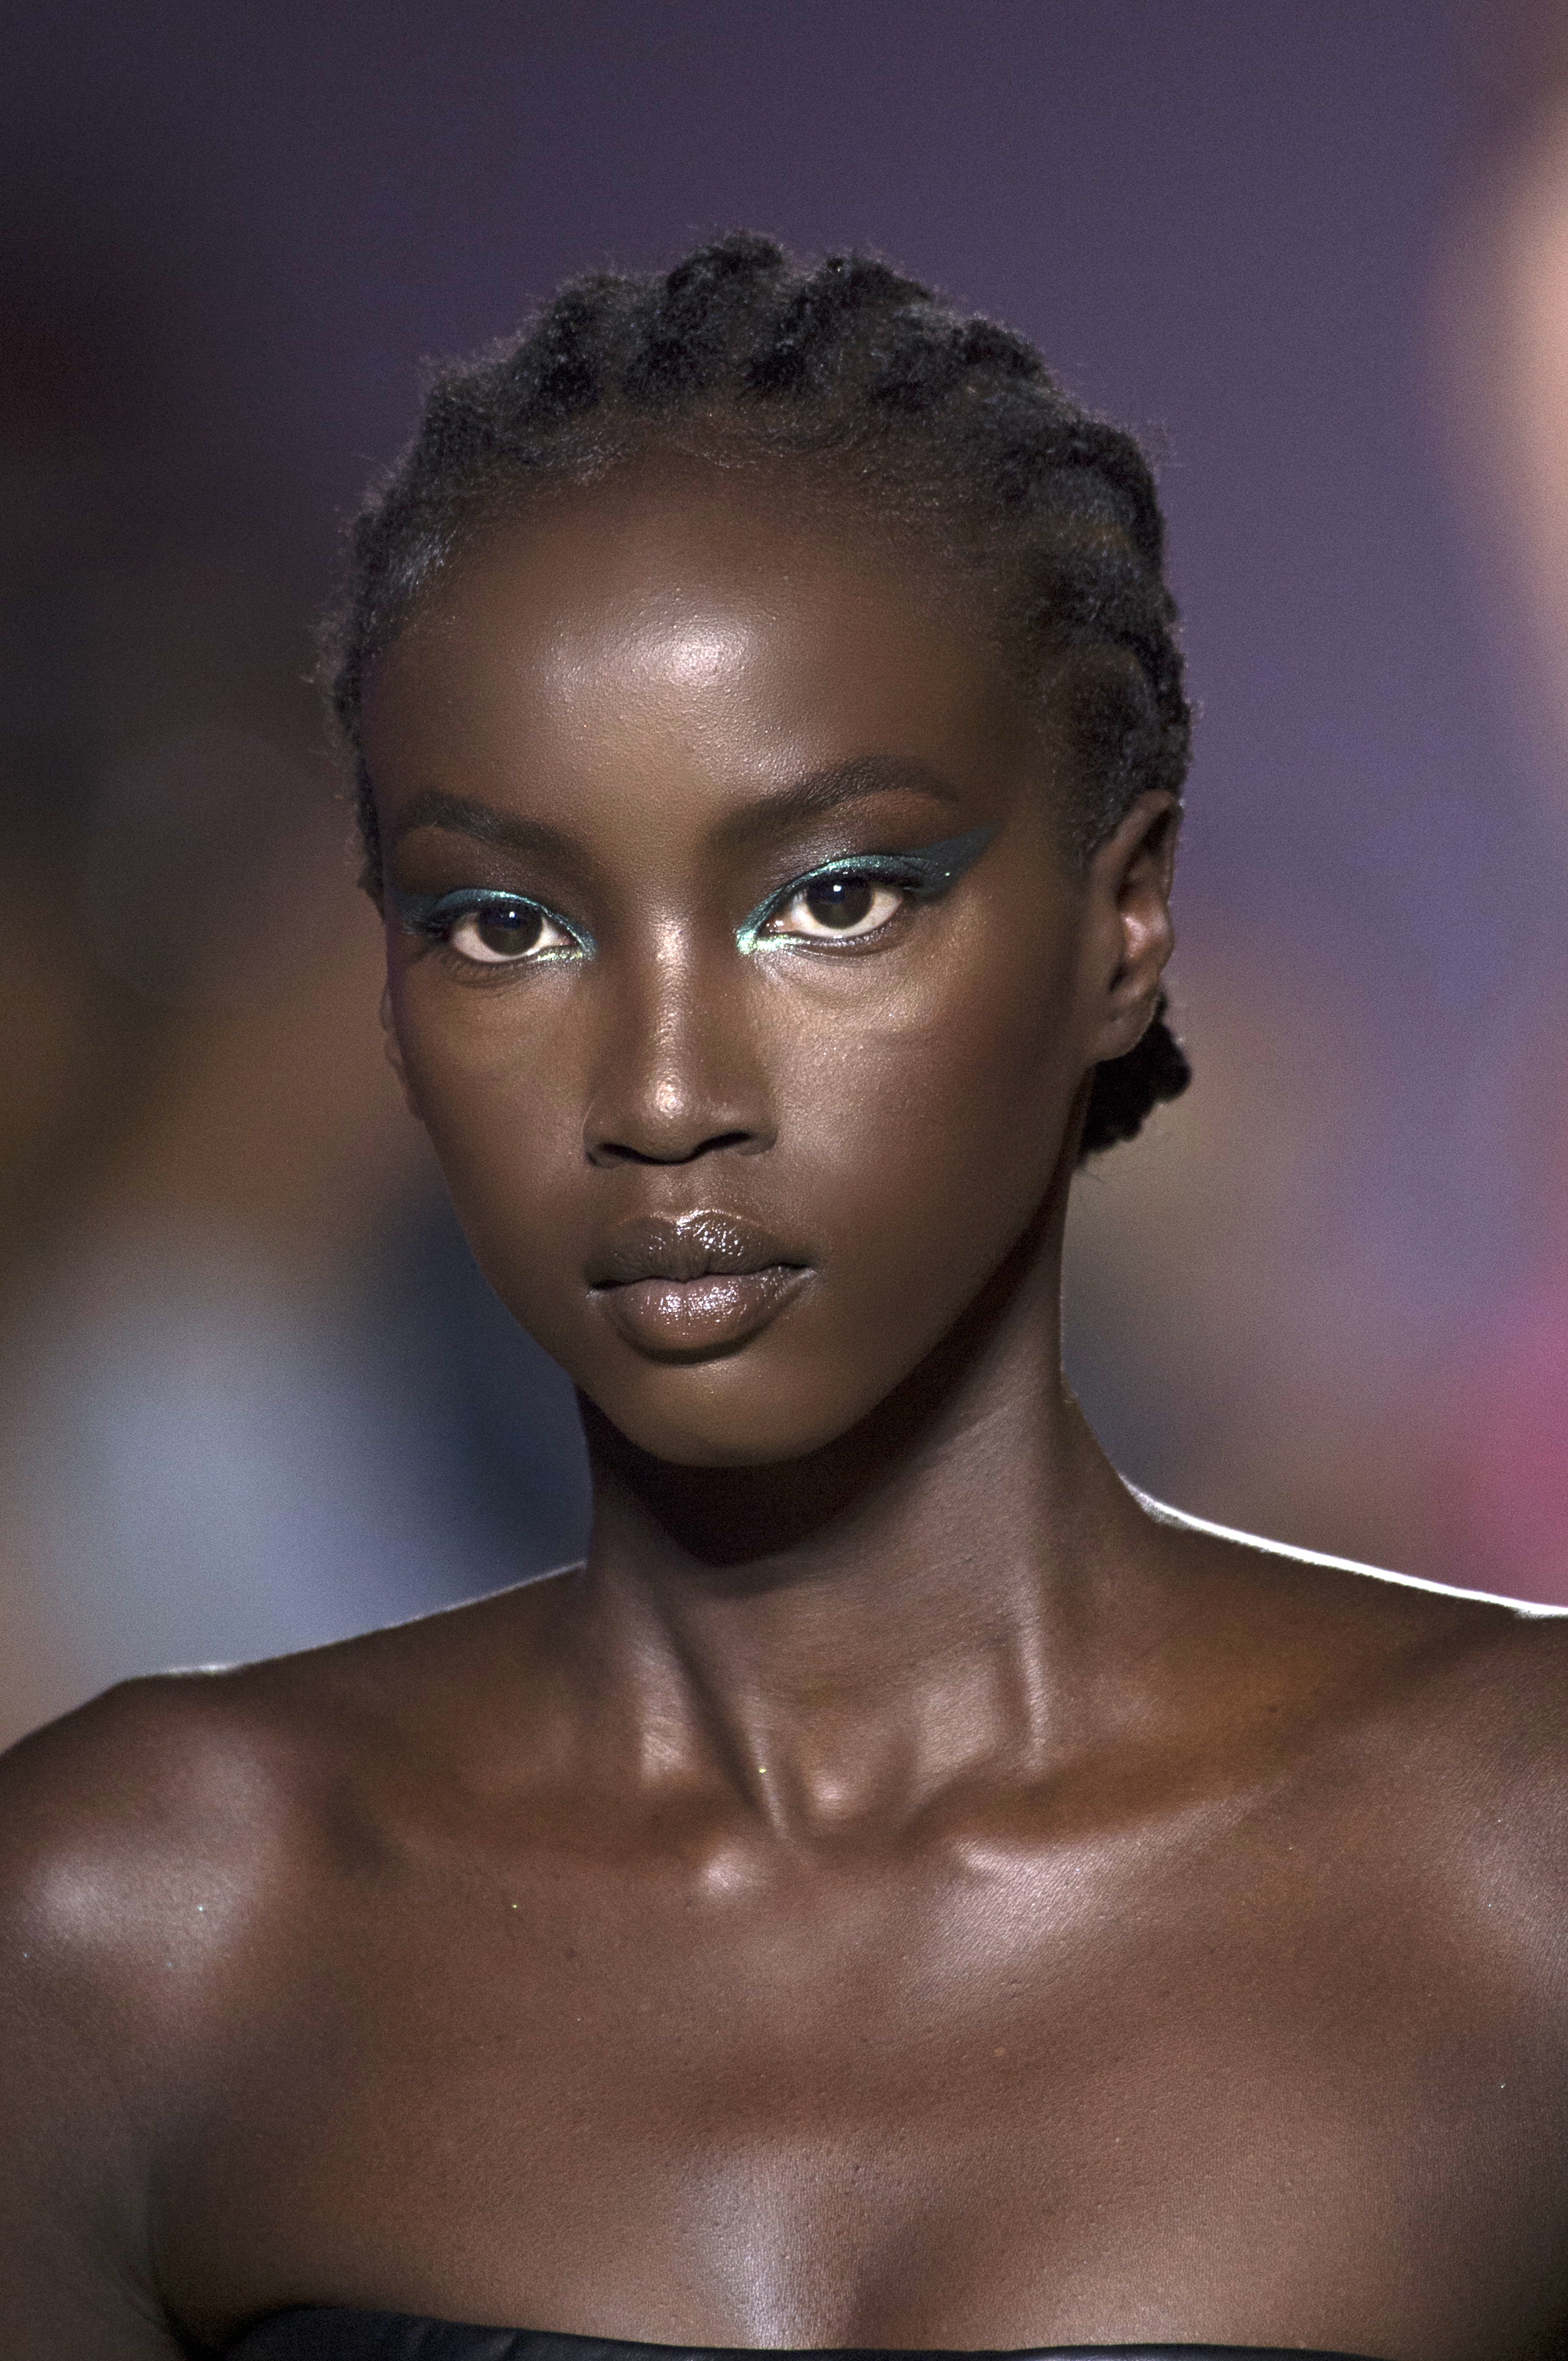 VERSACE   Metallic bright eyeshadow extended all the way out to the temples. Look created by Pat McGrath.